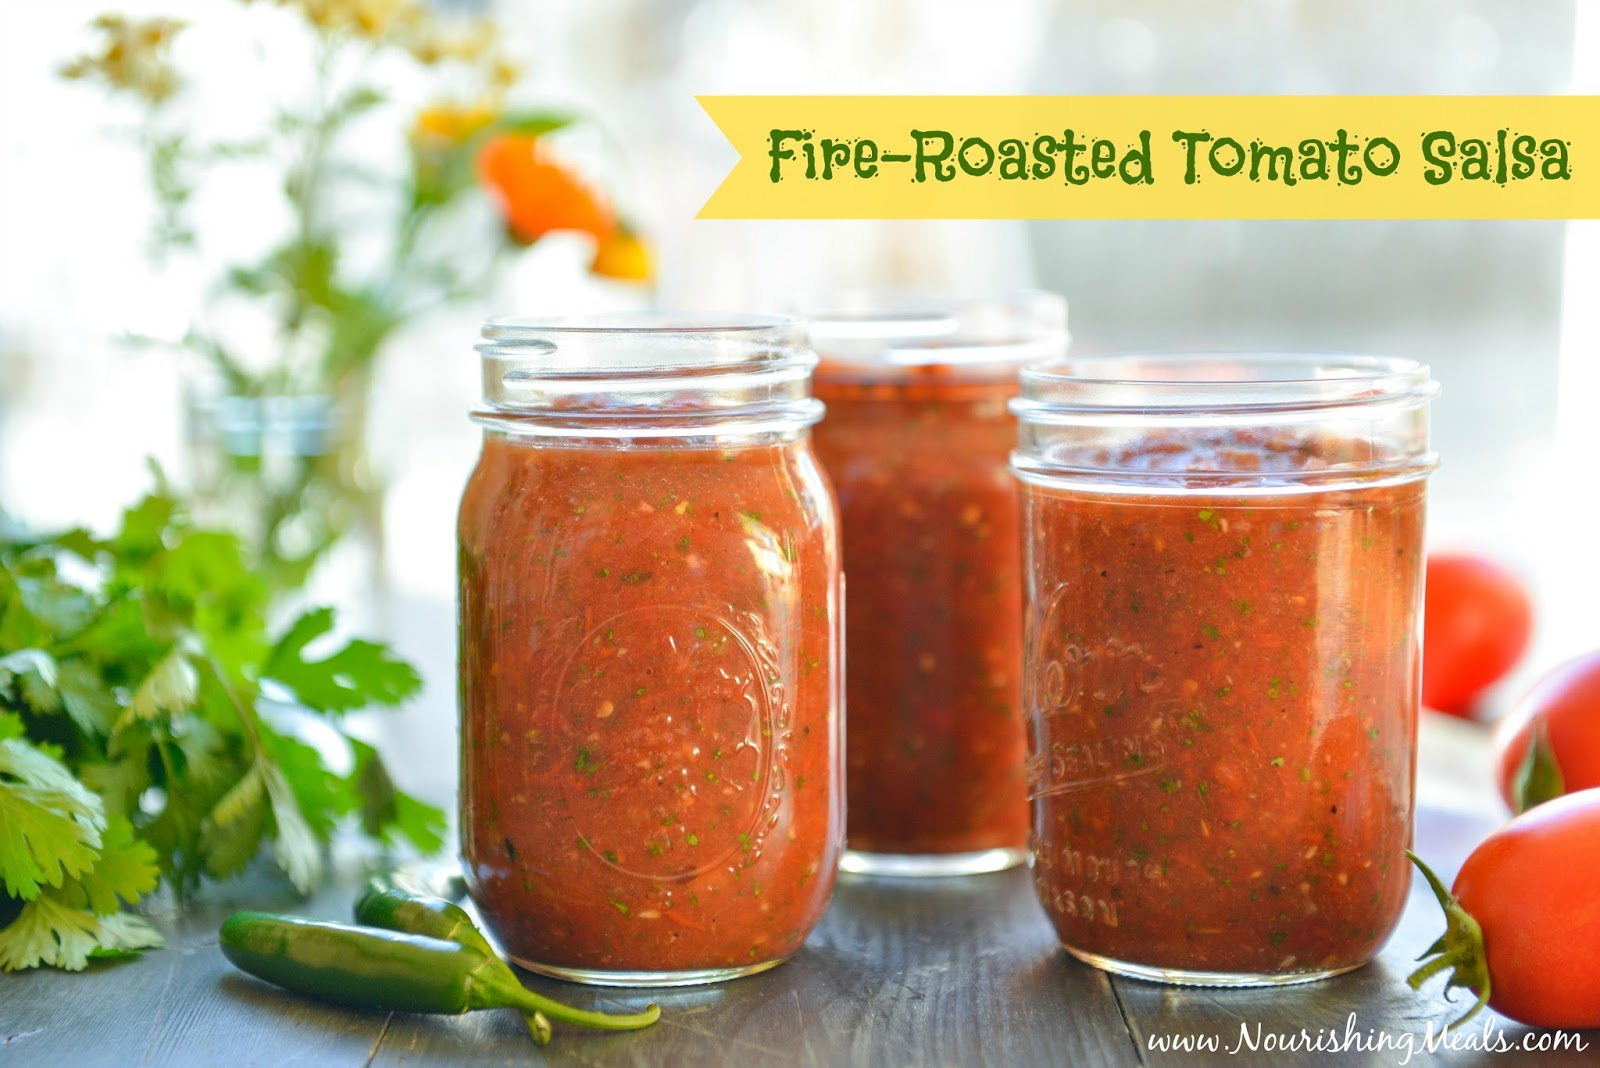 Nourishing Meals®: Fire-Roasted Tomato Salsa Recipe